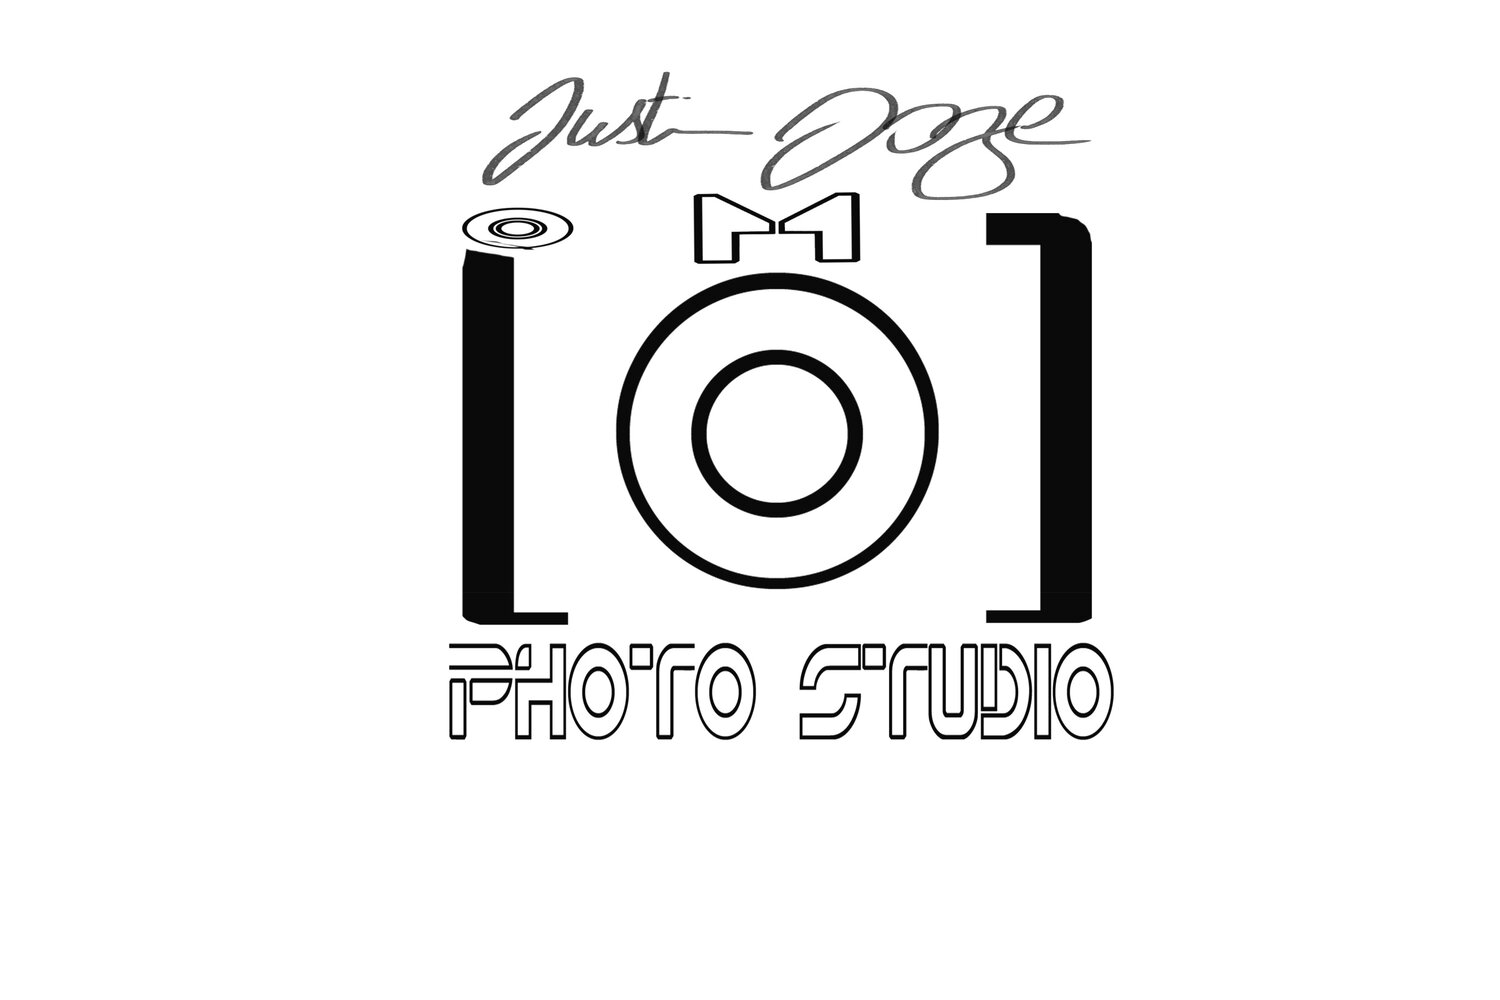 Justin Gage Photo Studio